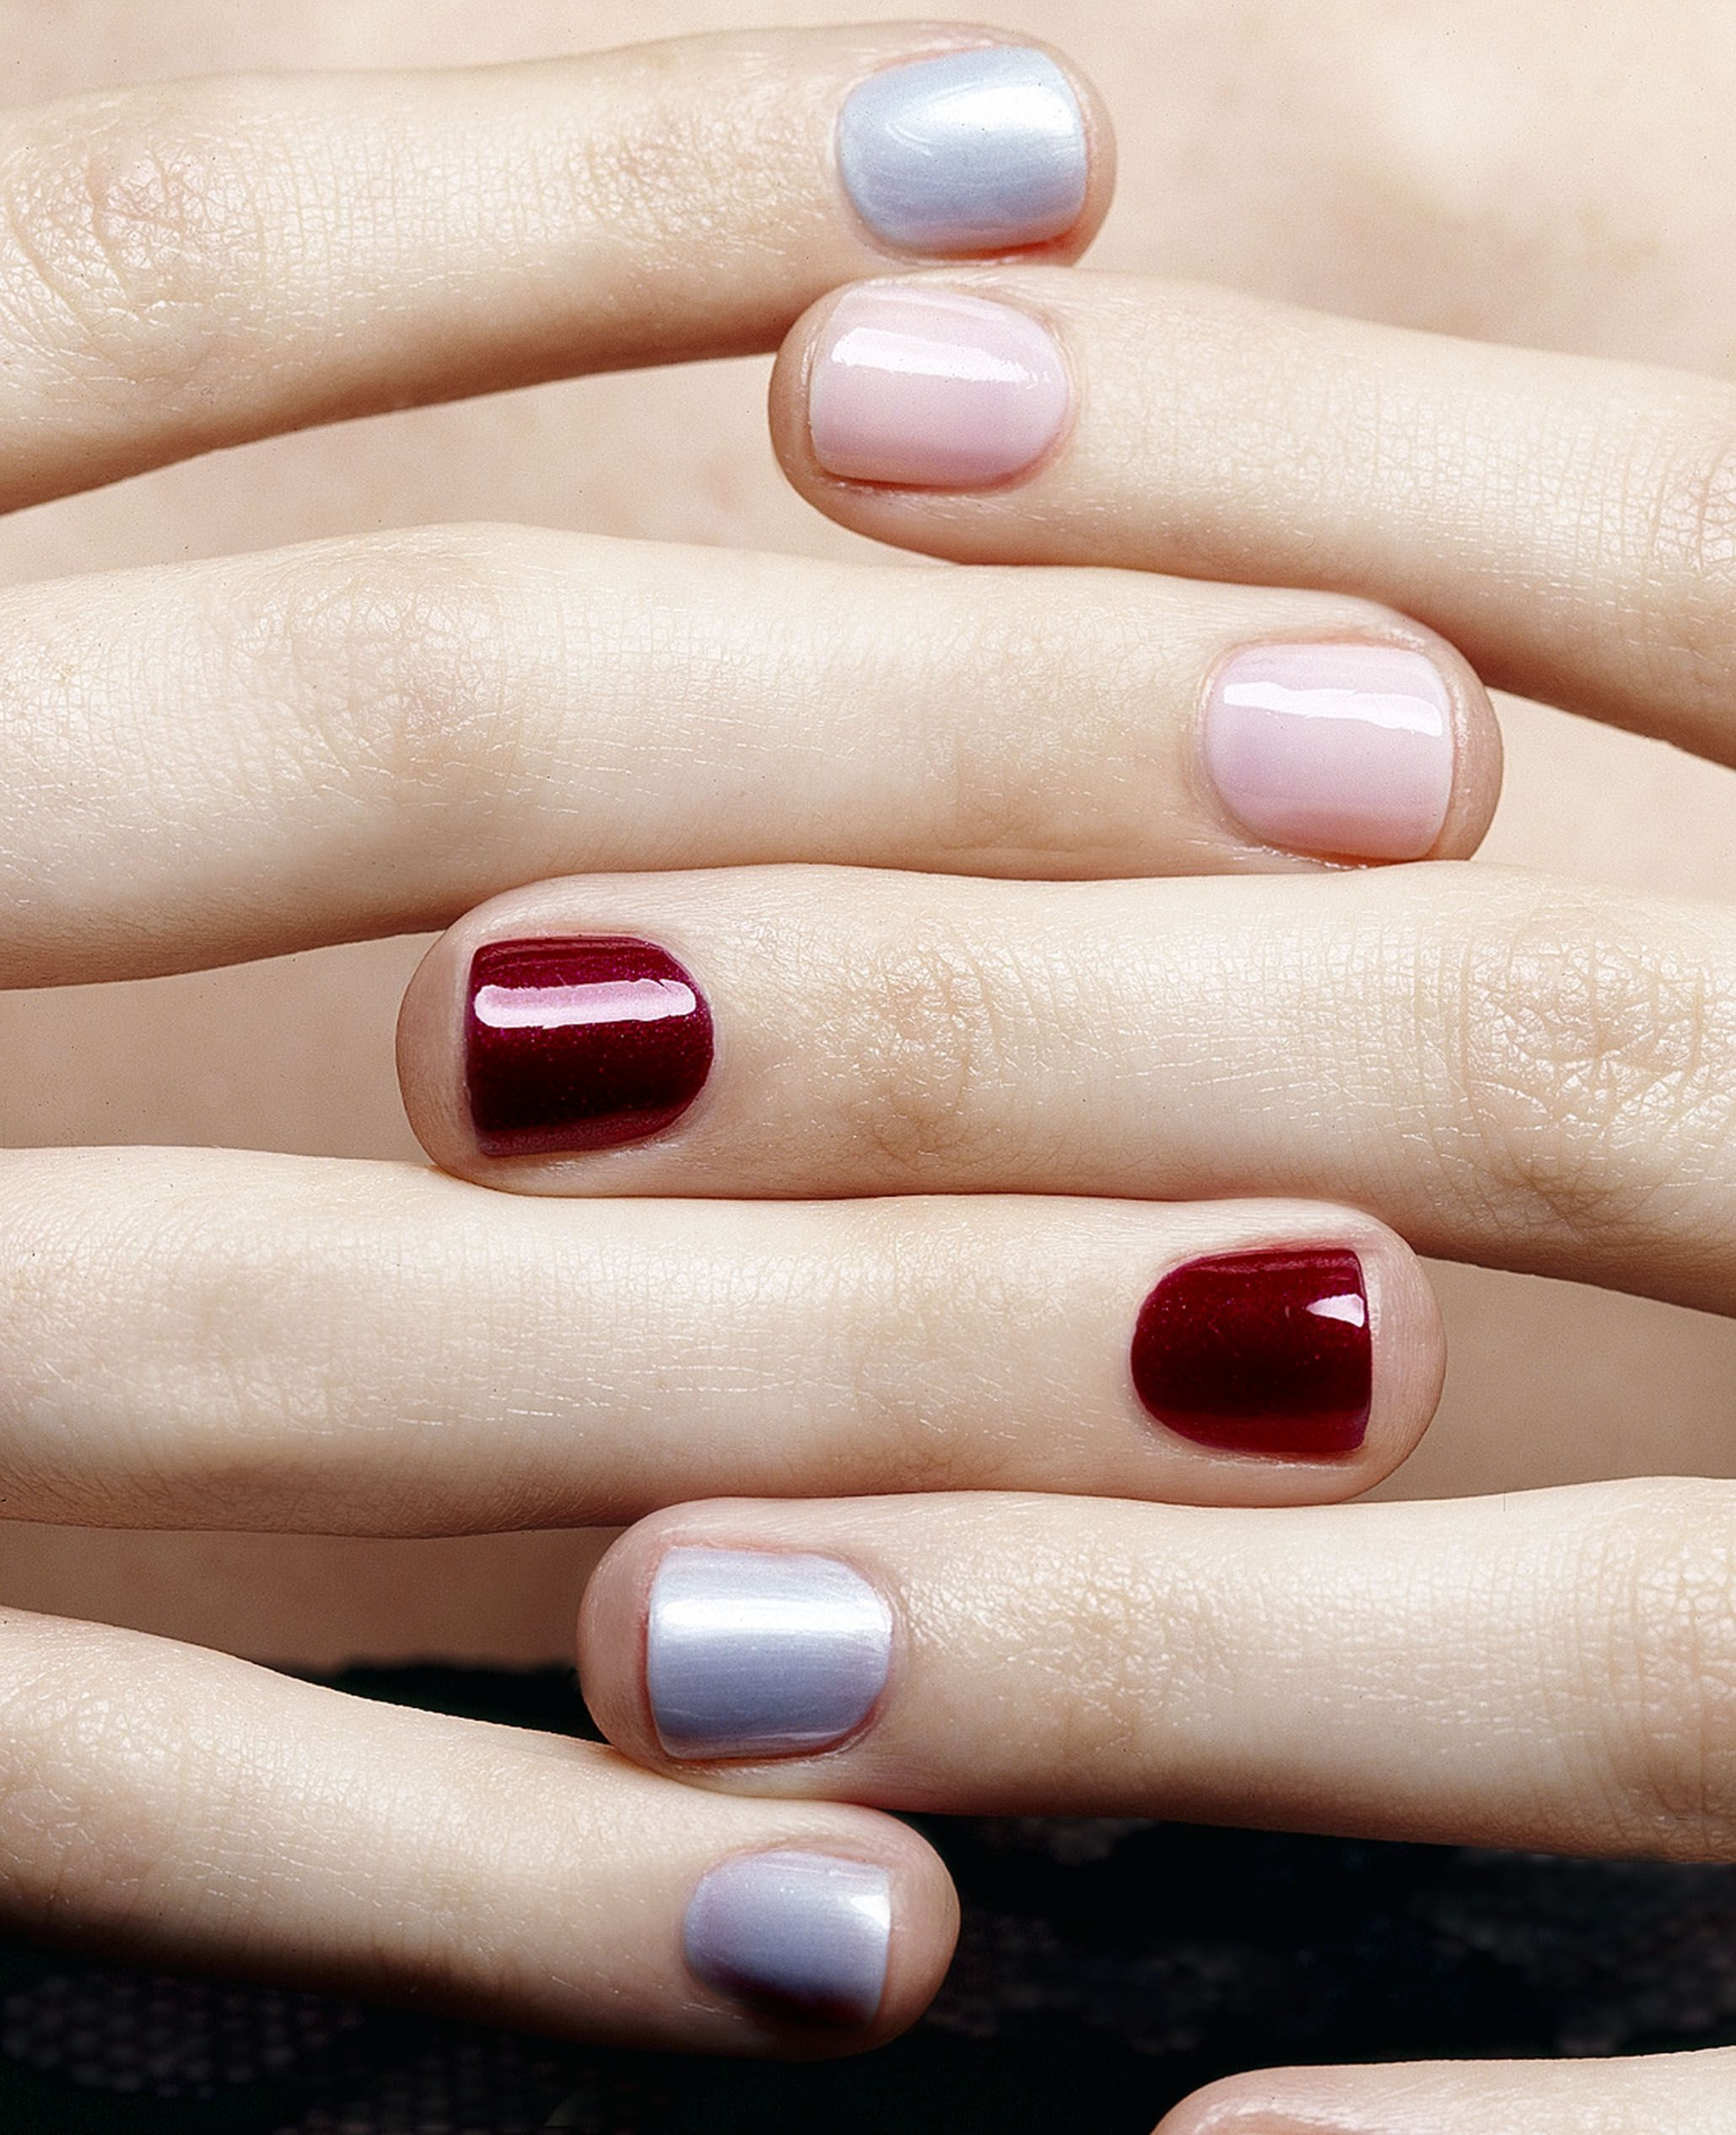 6 Ways to Tell if Your Nail Salon Is Safe